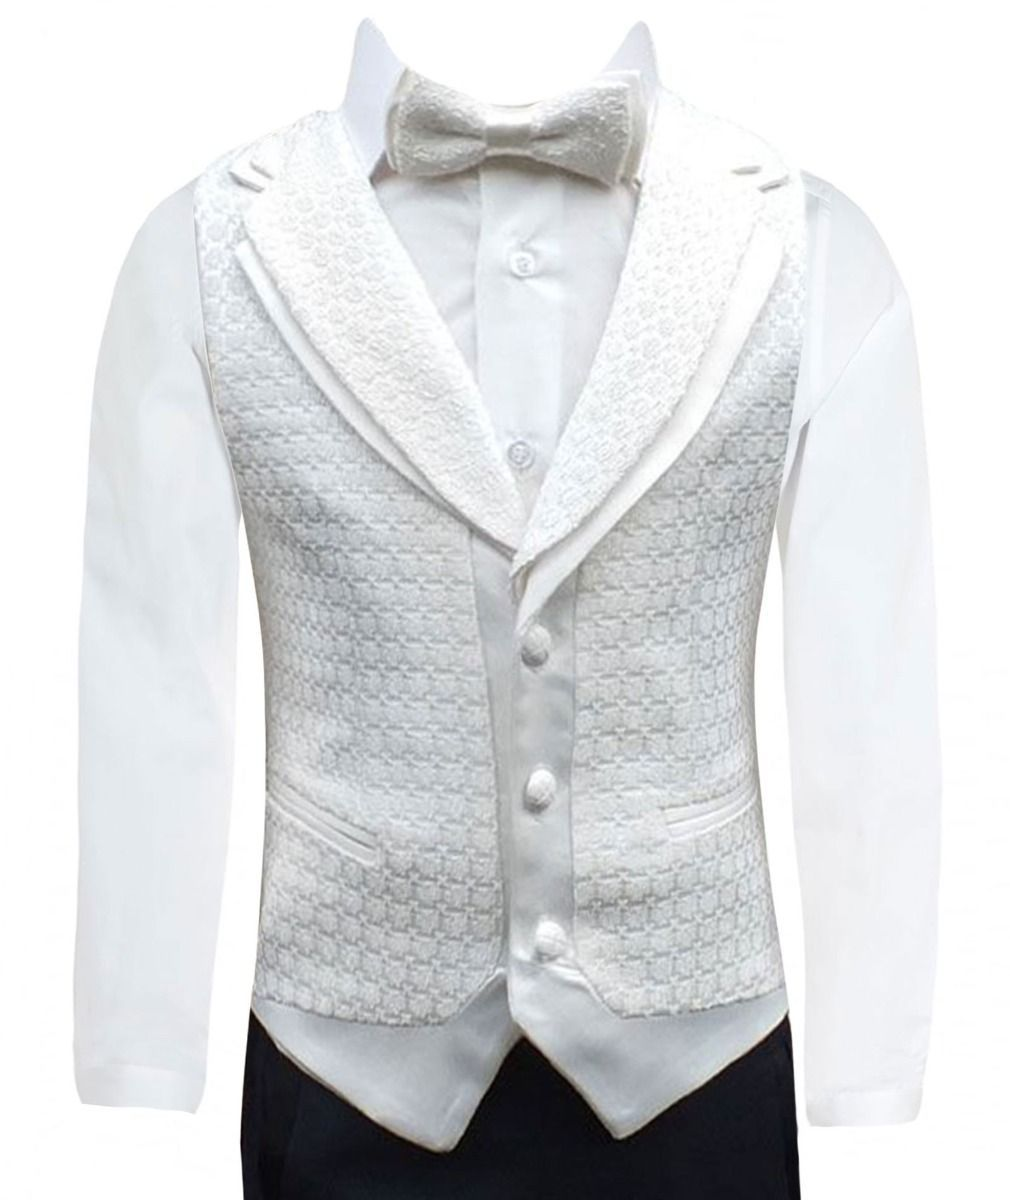 9d167b9df203 This ivory pageboy suit is one of our best selling suits and in boys formal  wear, one of the highest quality suits that is currently on the market.